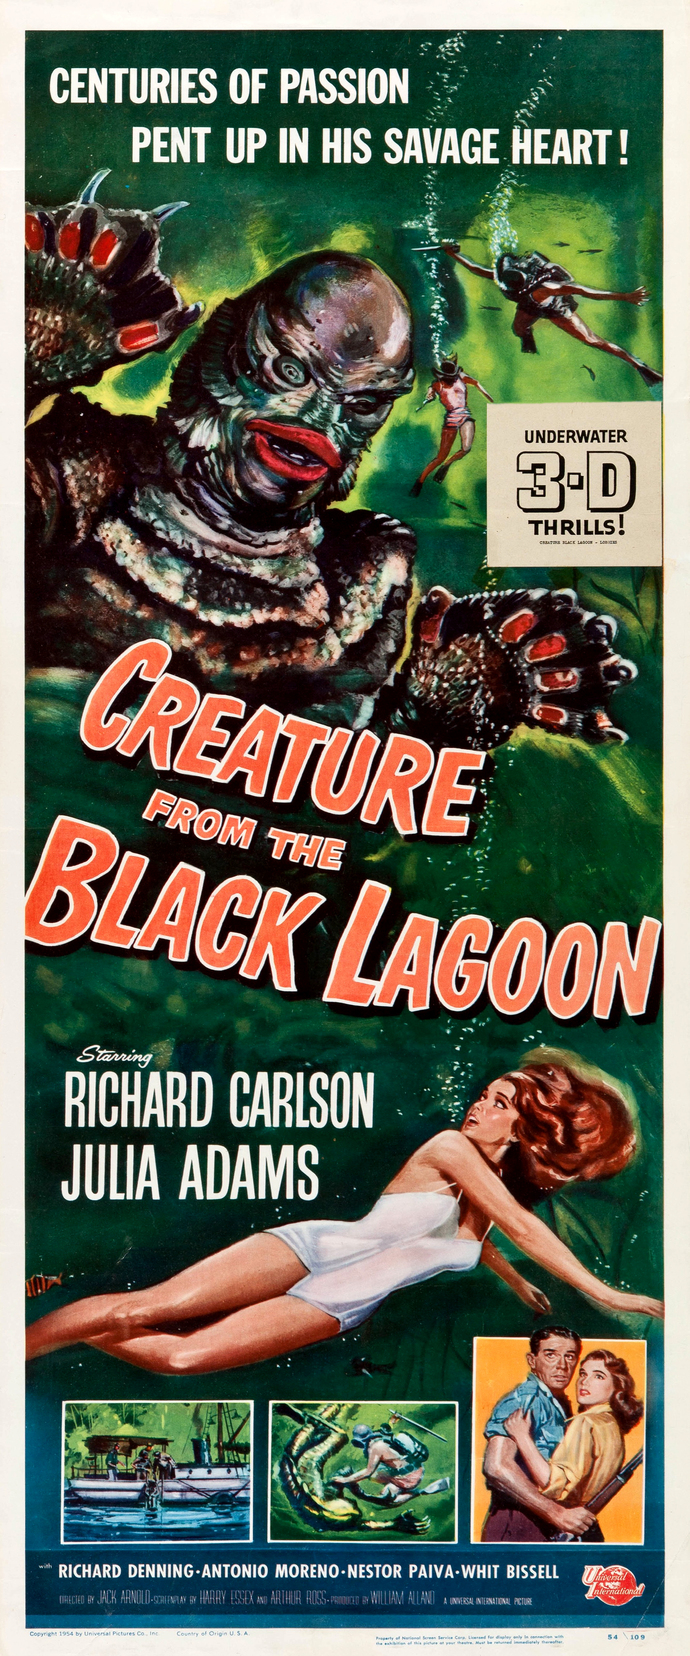 "Creature from the Black Lagoon - 10"" wide x 24"" tall Vintage Movie Poster Print"